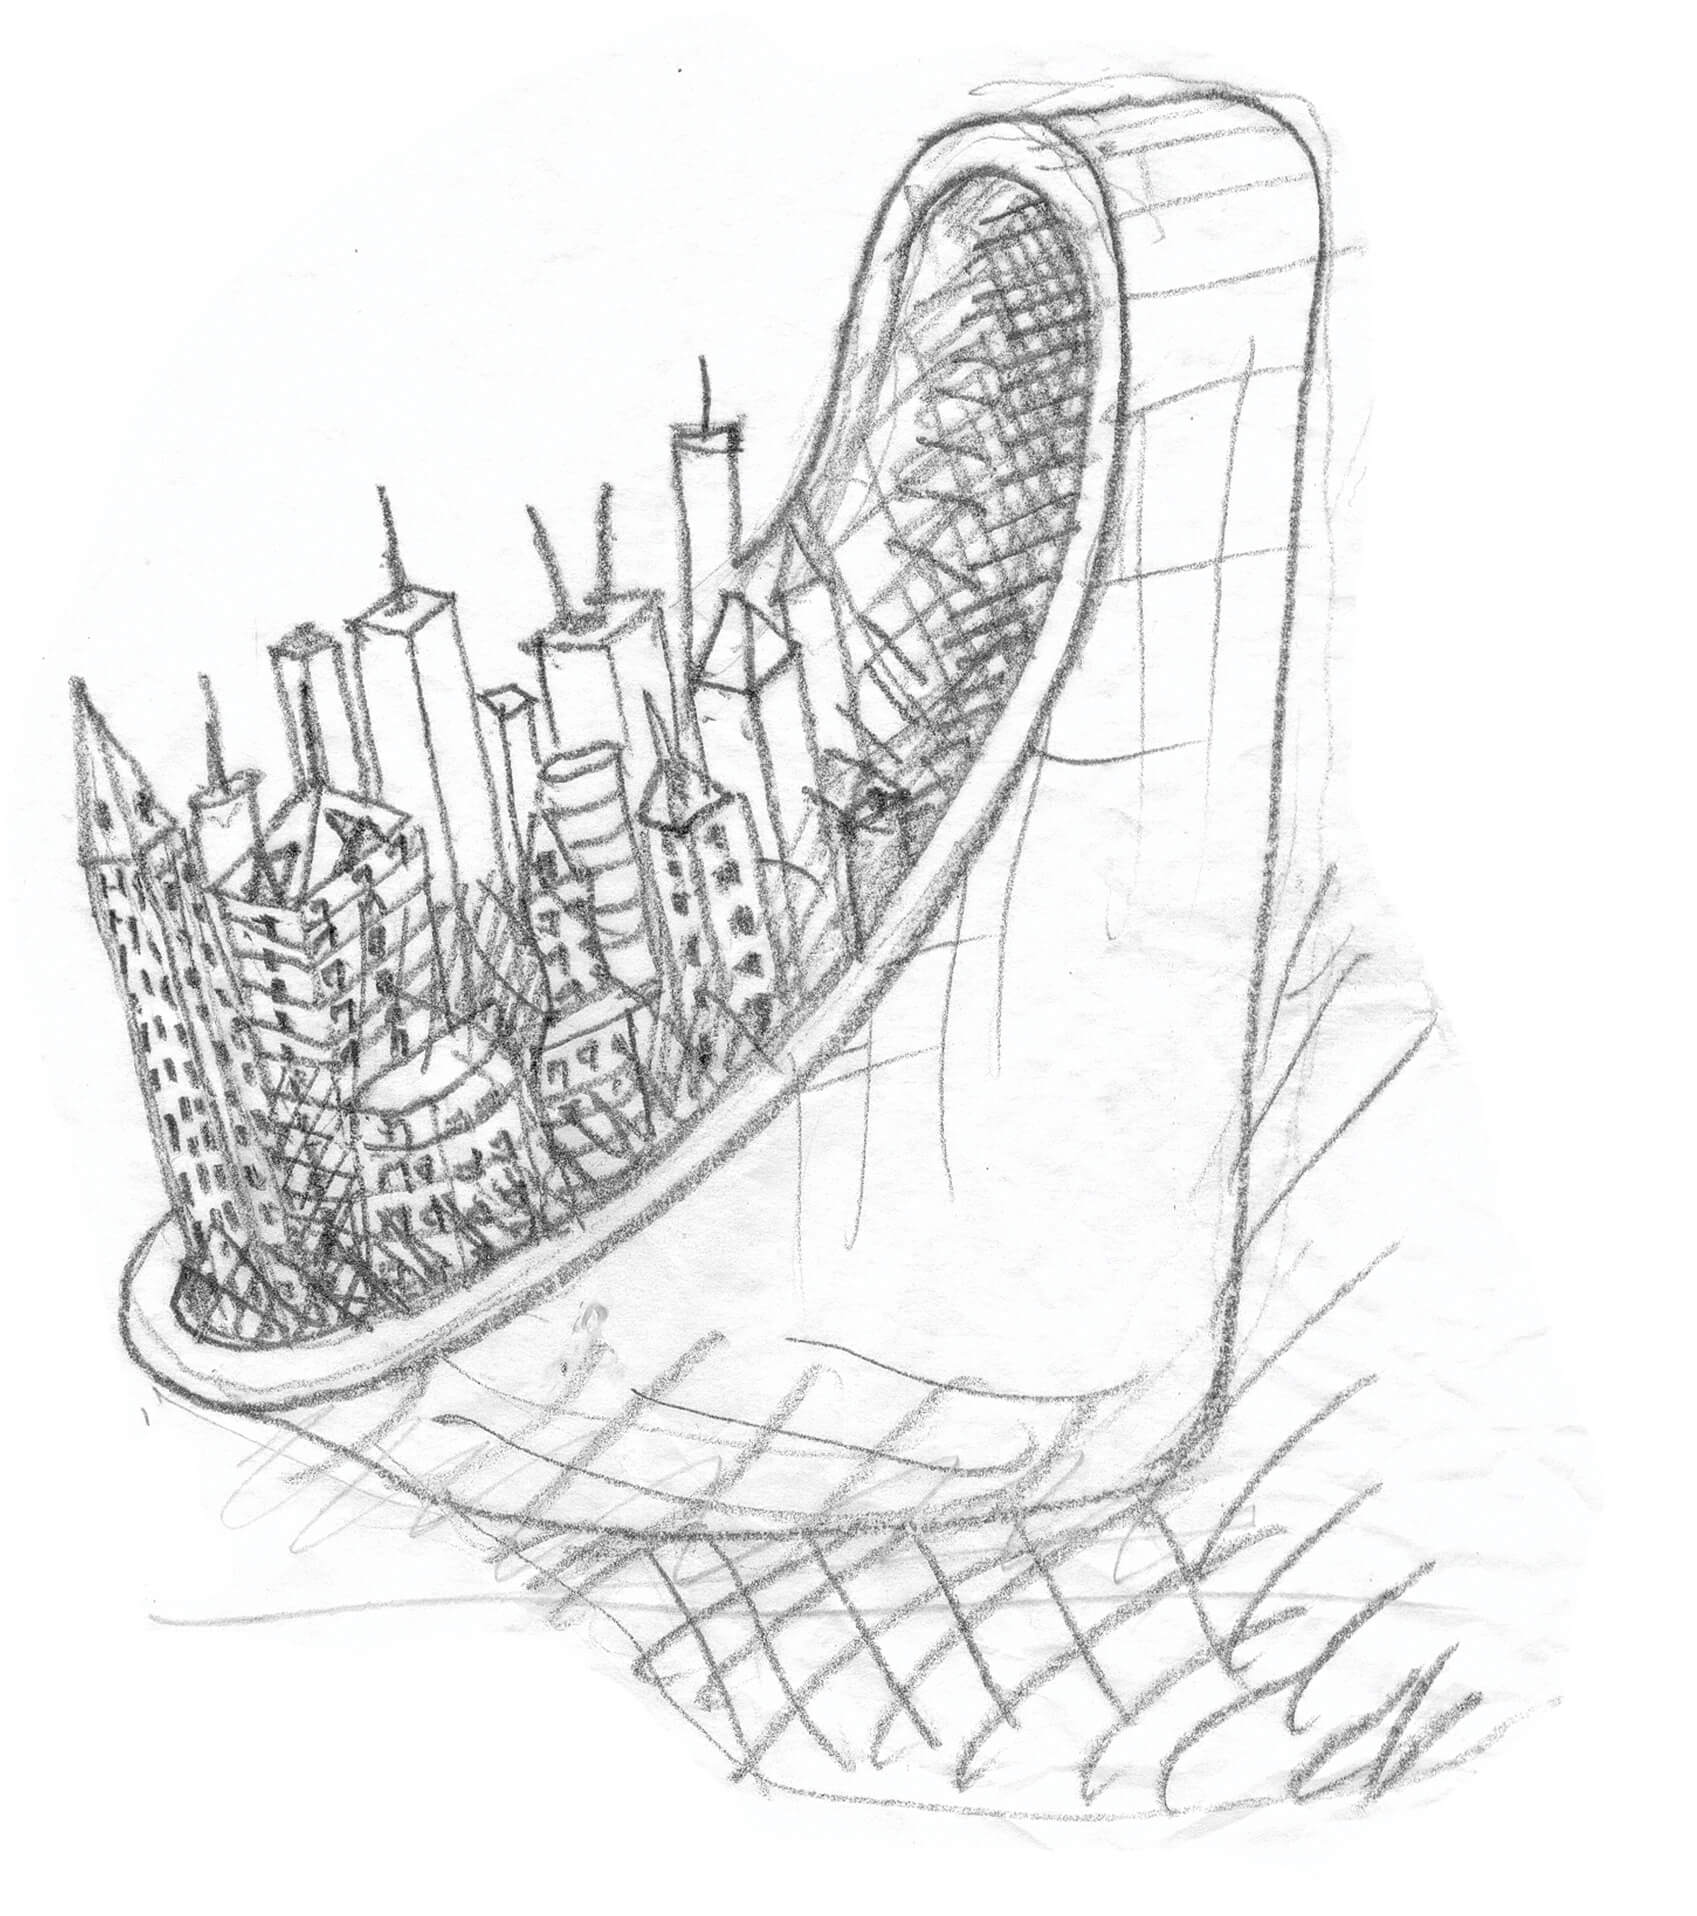 An architectural sketch by Gautam Bhatia | Supreme Court ruling on Architects Act | STIRworld